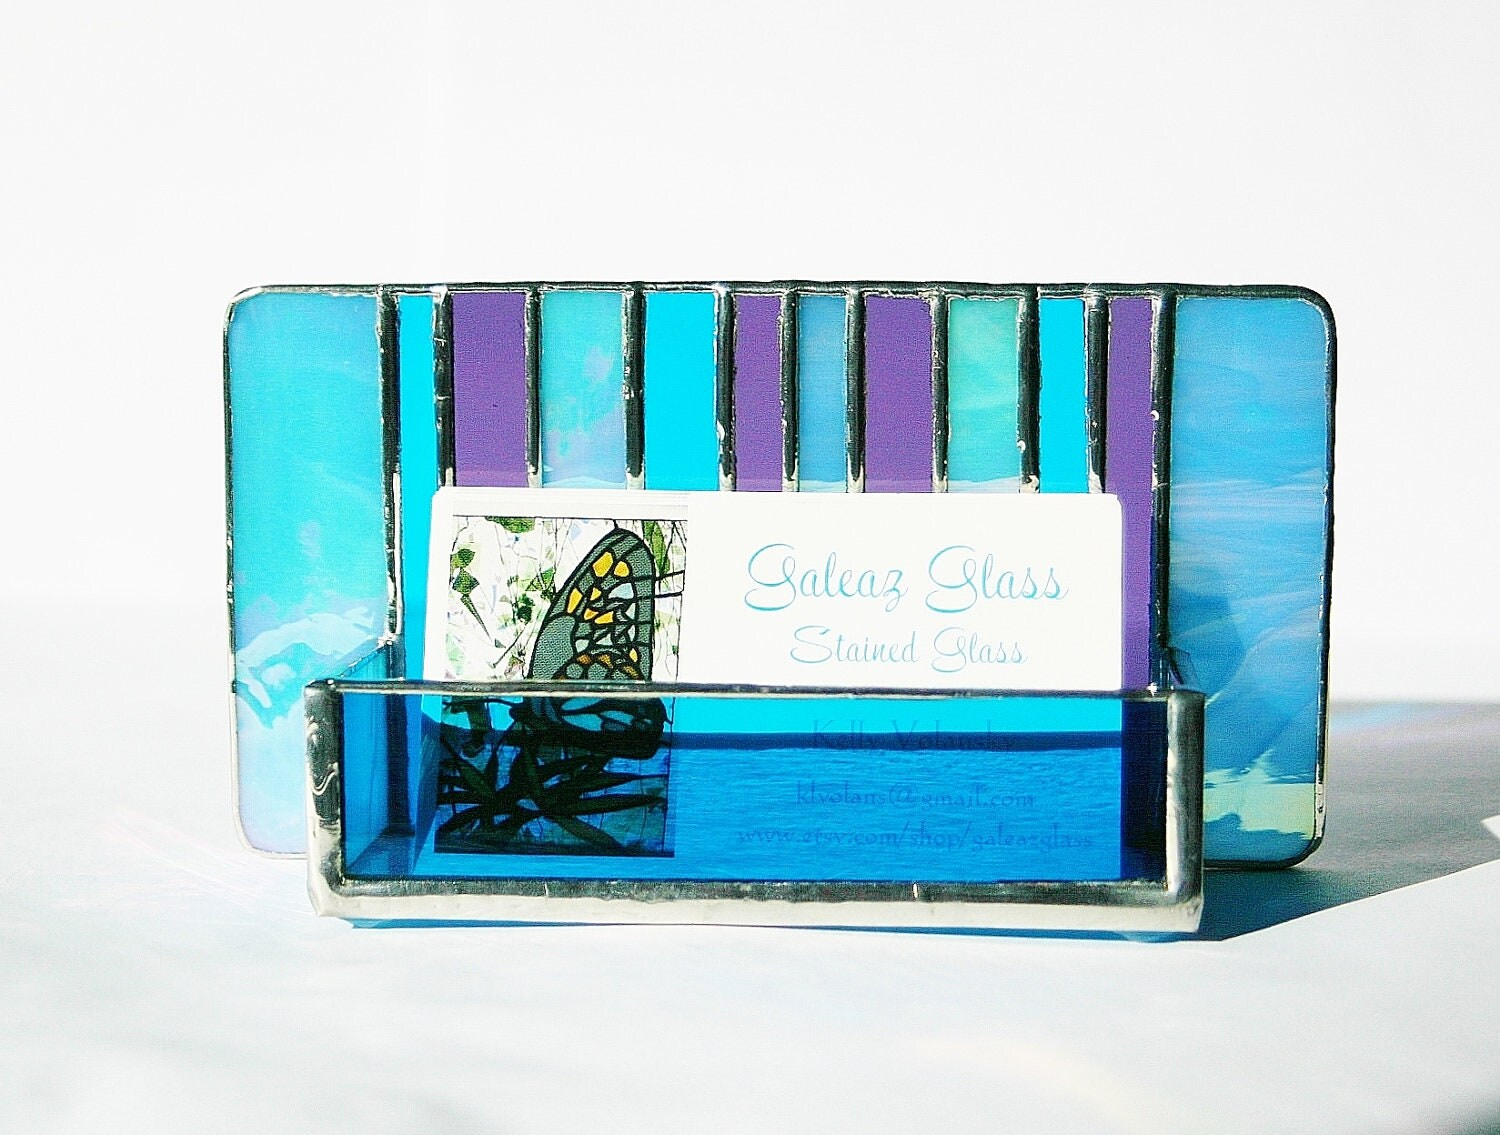 Stained glass business card holder blue iridescent purple for Iridescent business cards